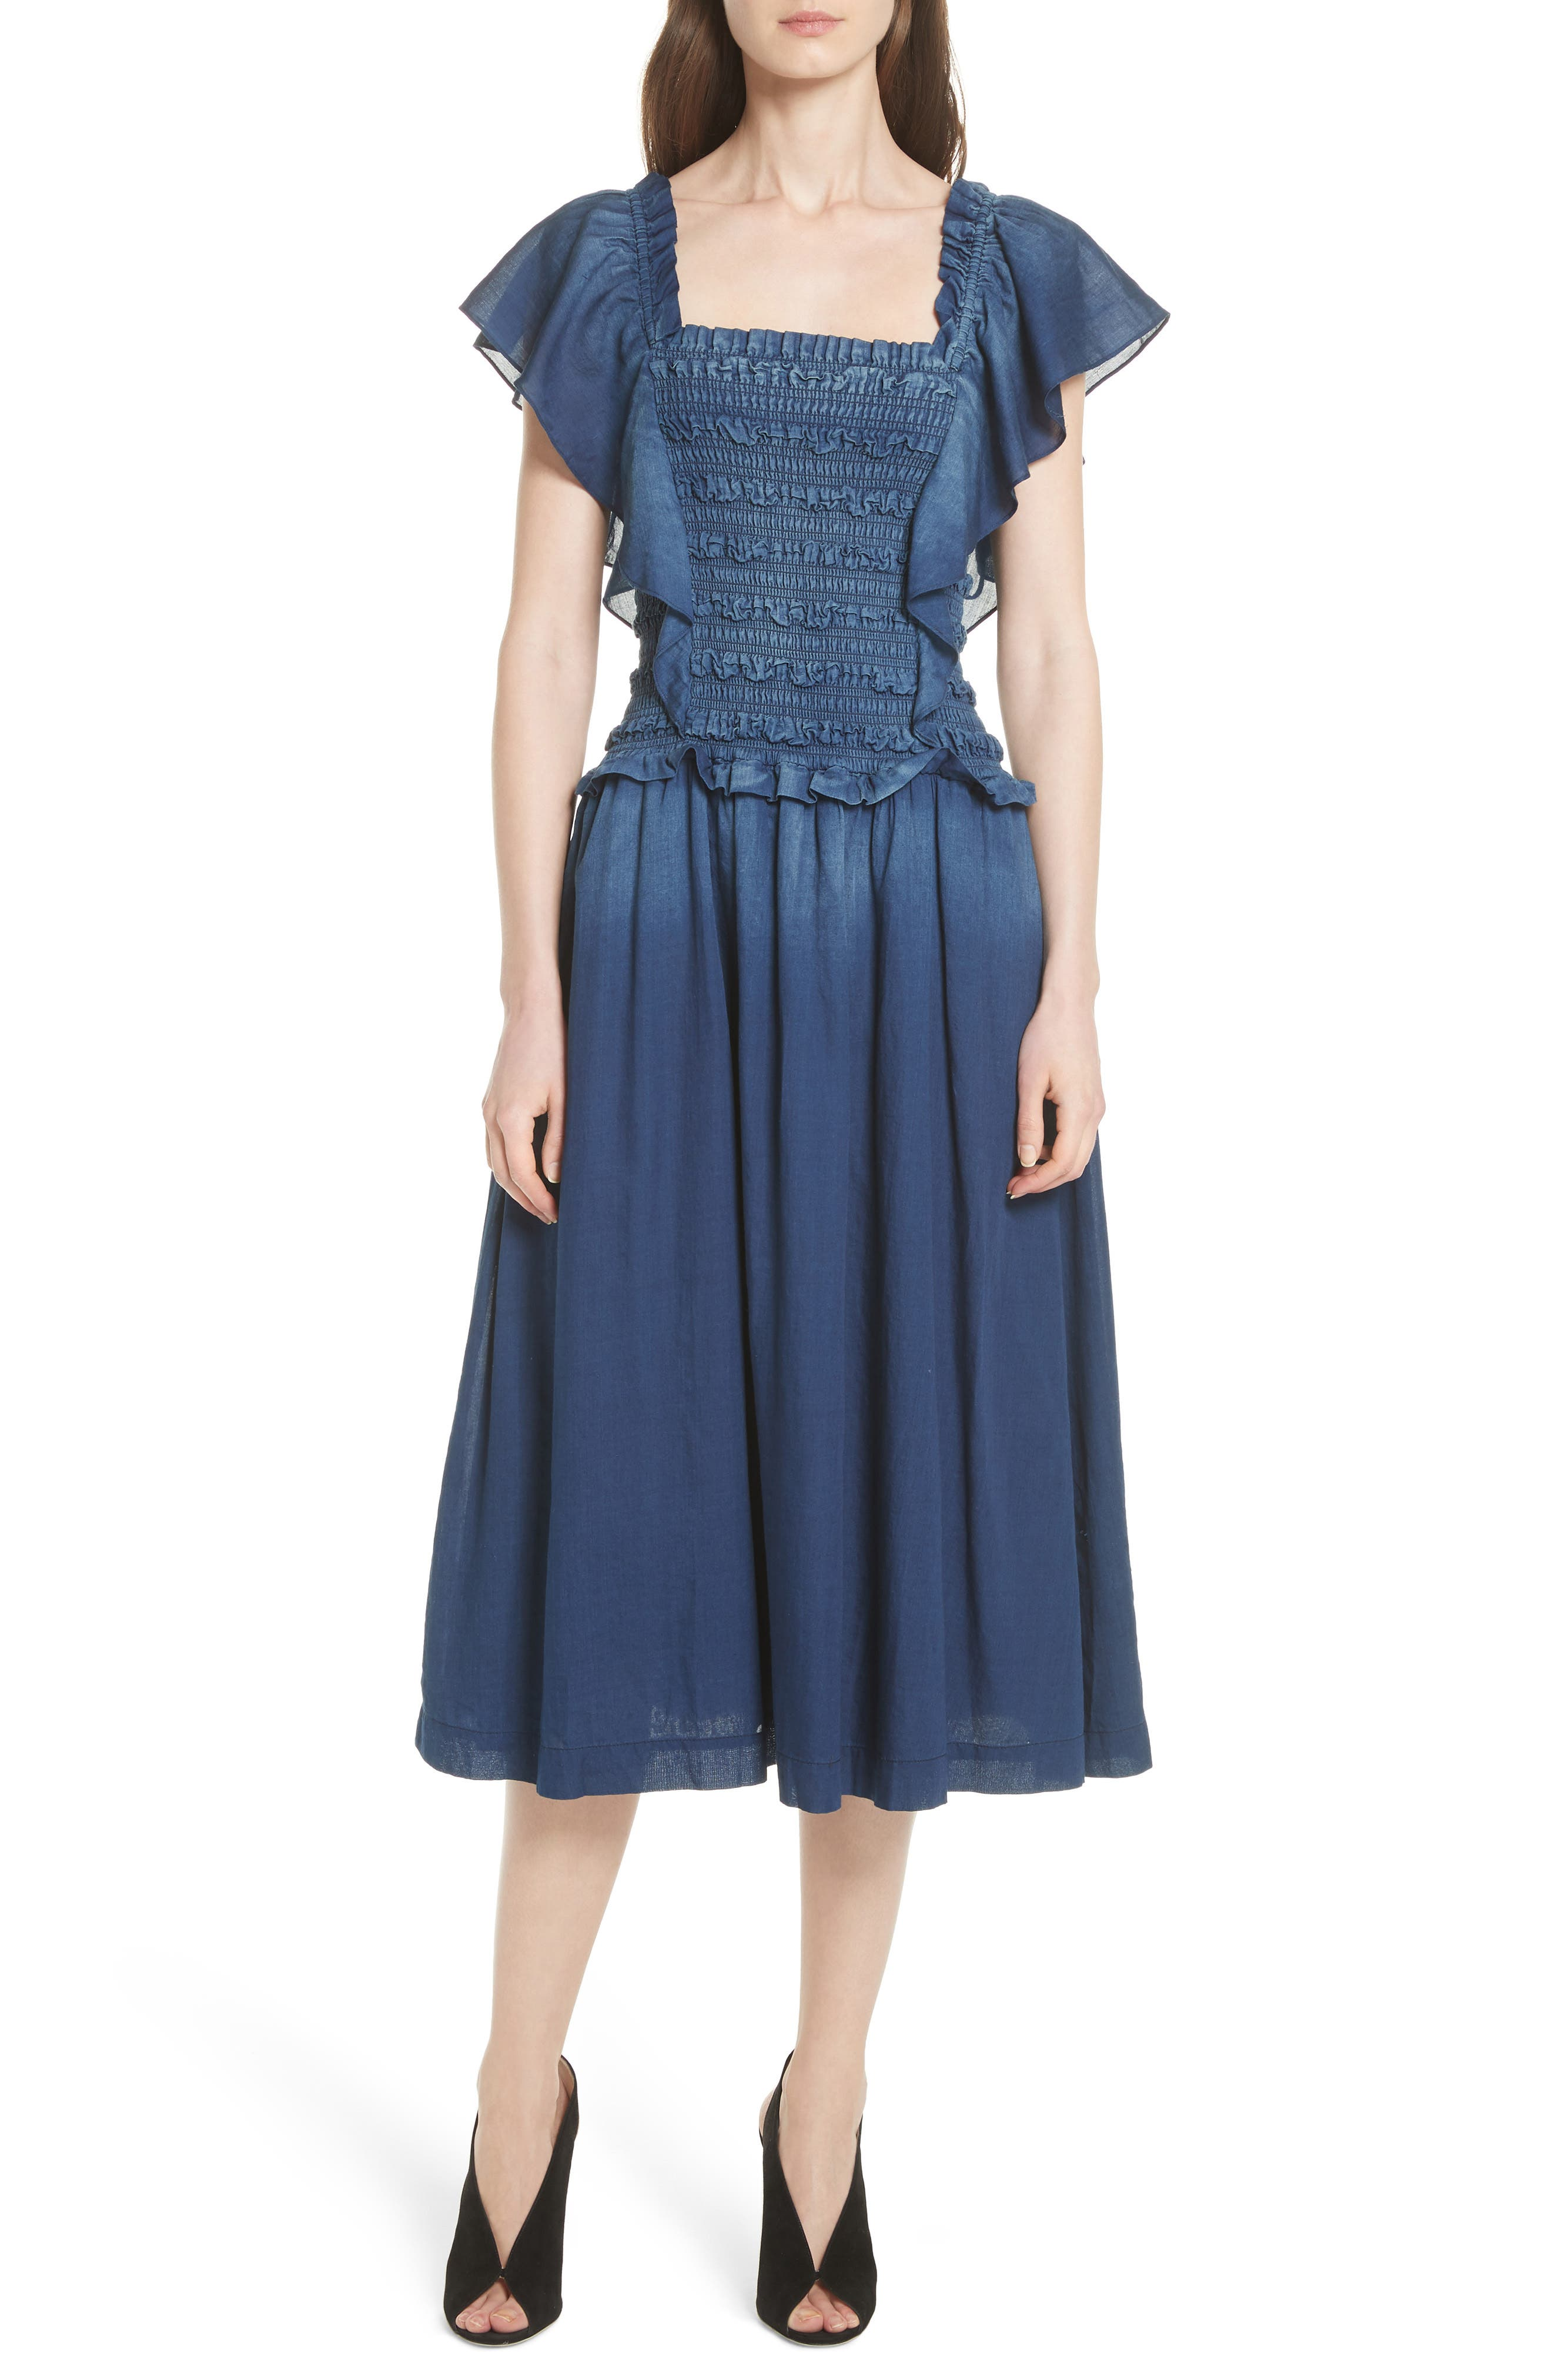 Main Image - La Vie Rebecca Taylor Smocked Tissue Denim Dress